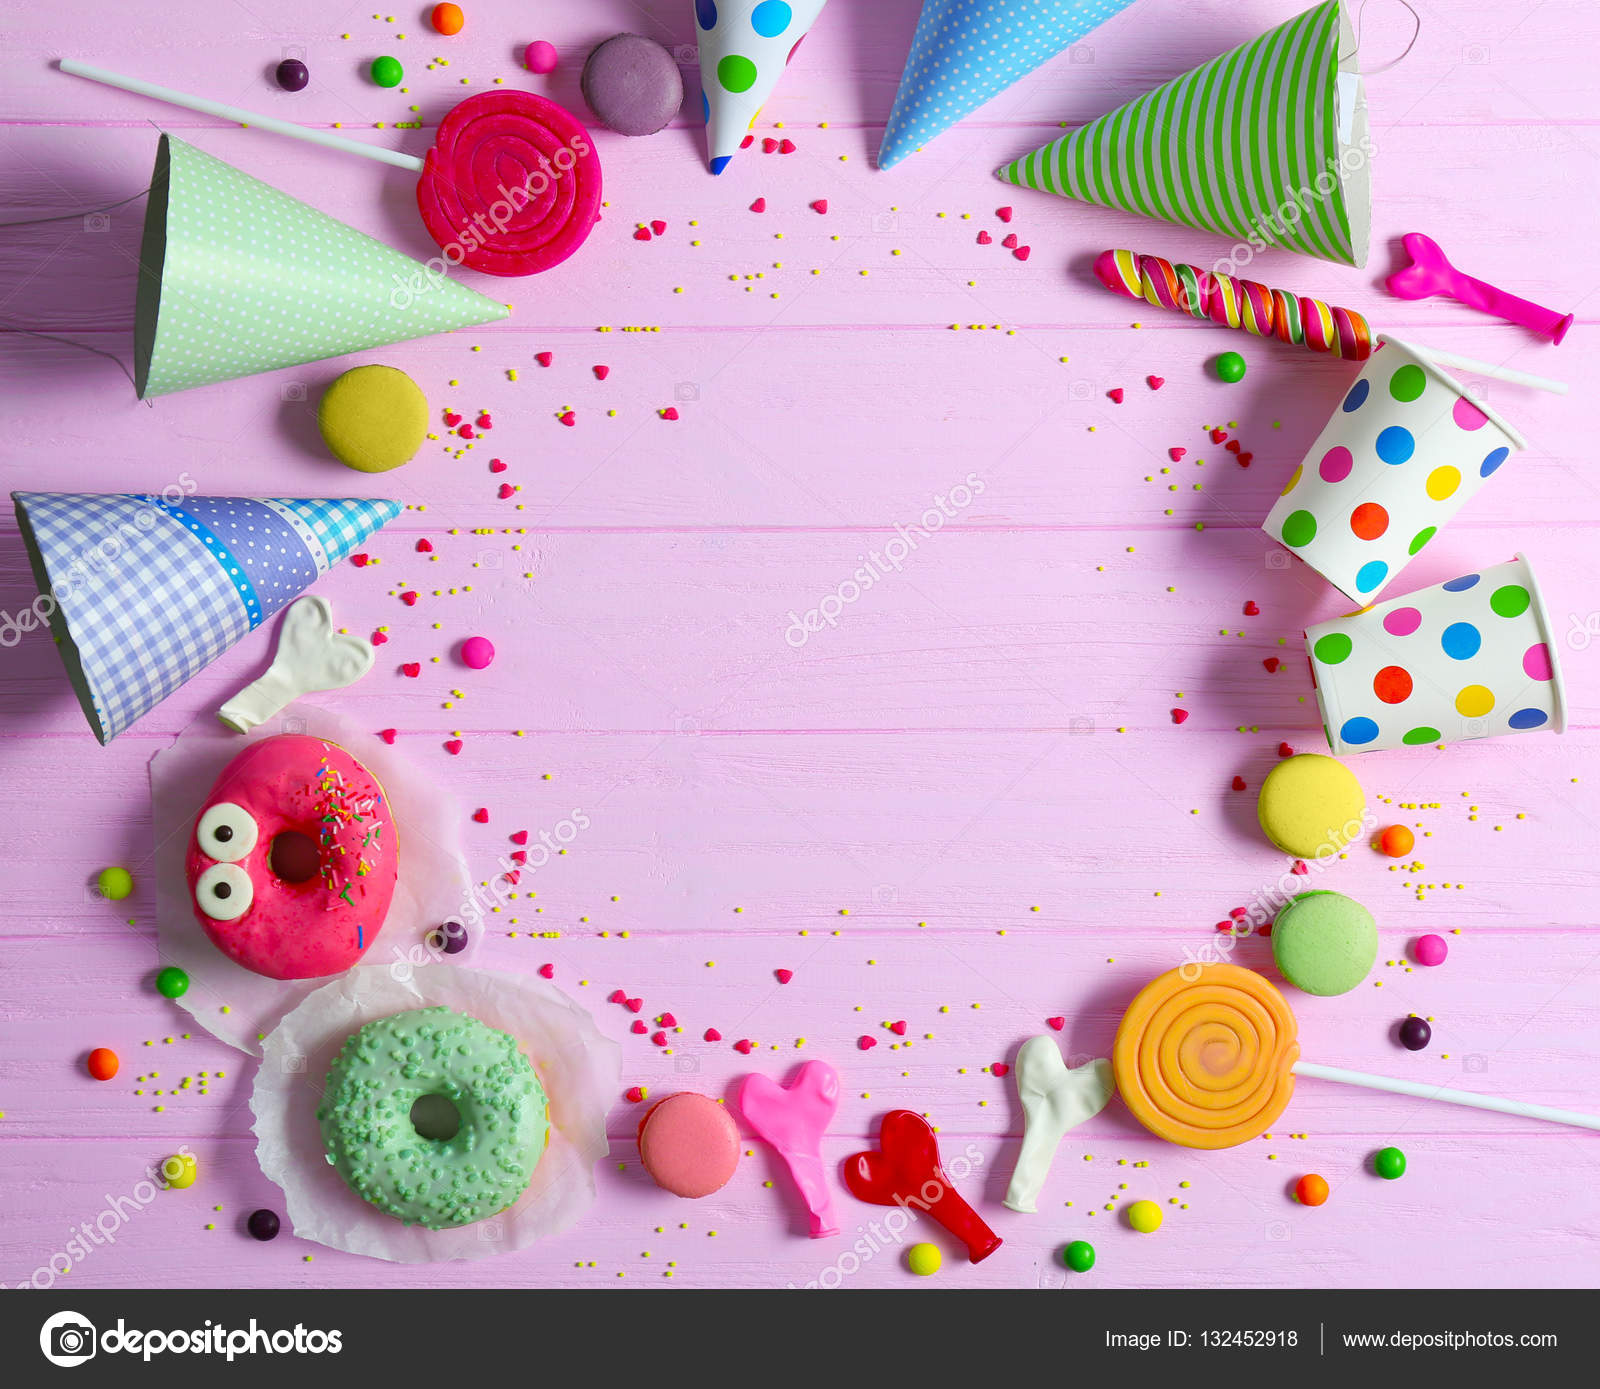 Bright Birthday Background With Sweets And Decorations Photo By Belchonock